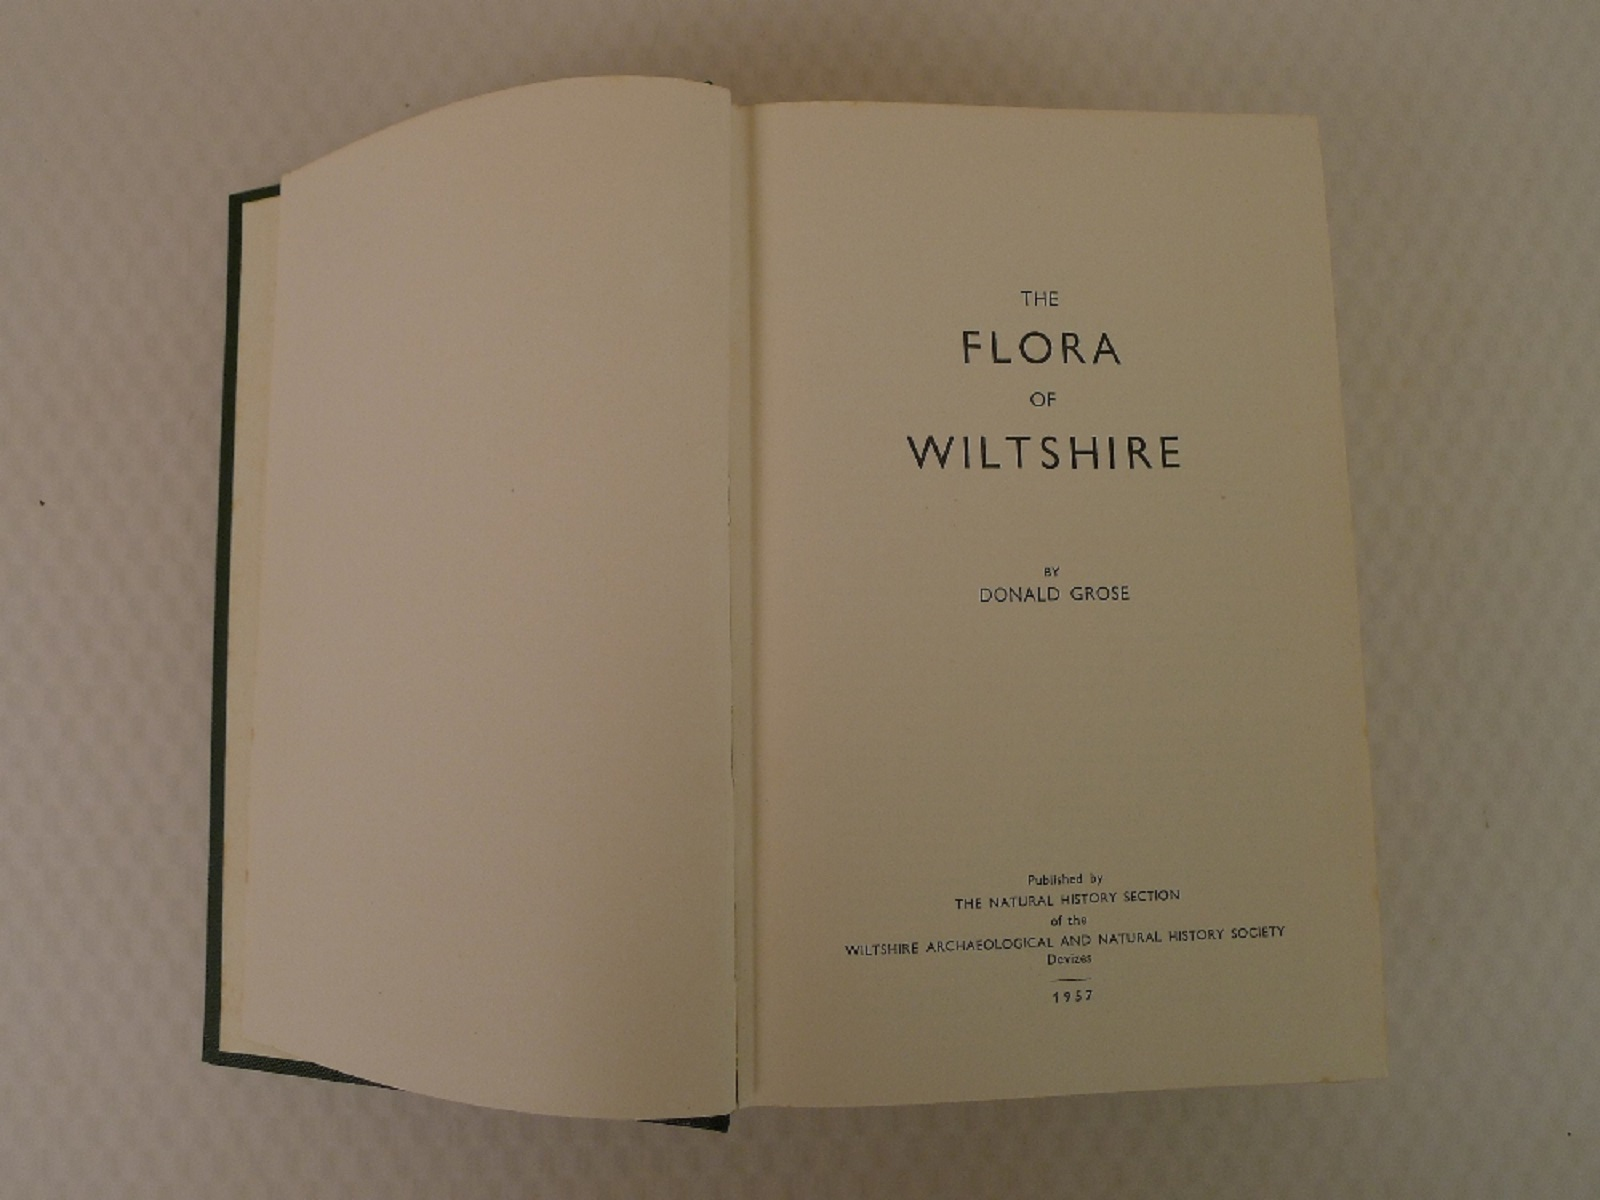 The Flora of Wiltshire by Donald Grose published by the Natural History Section of The Wiltshire - Image 3 of 8